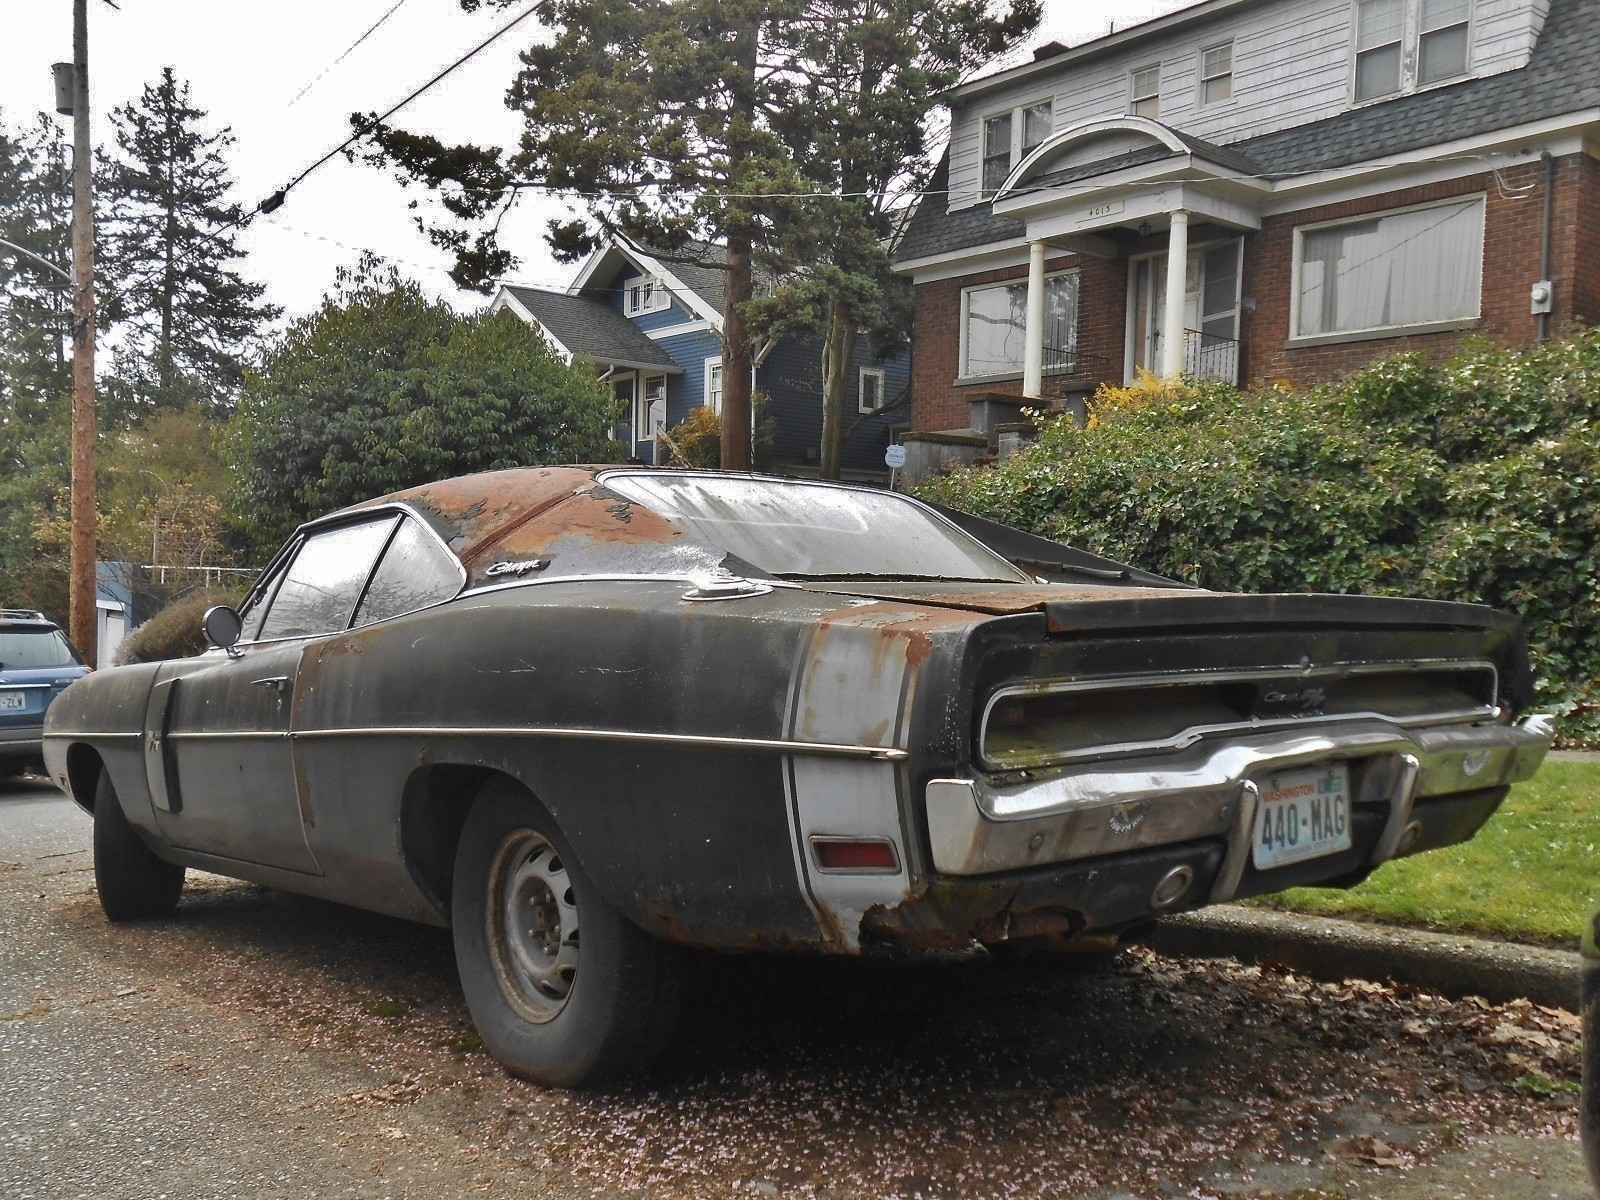 neglected-plum-crazy-1970-dodge-charger-r-t-440-rusting-in-washington-listed-as-stolen_12